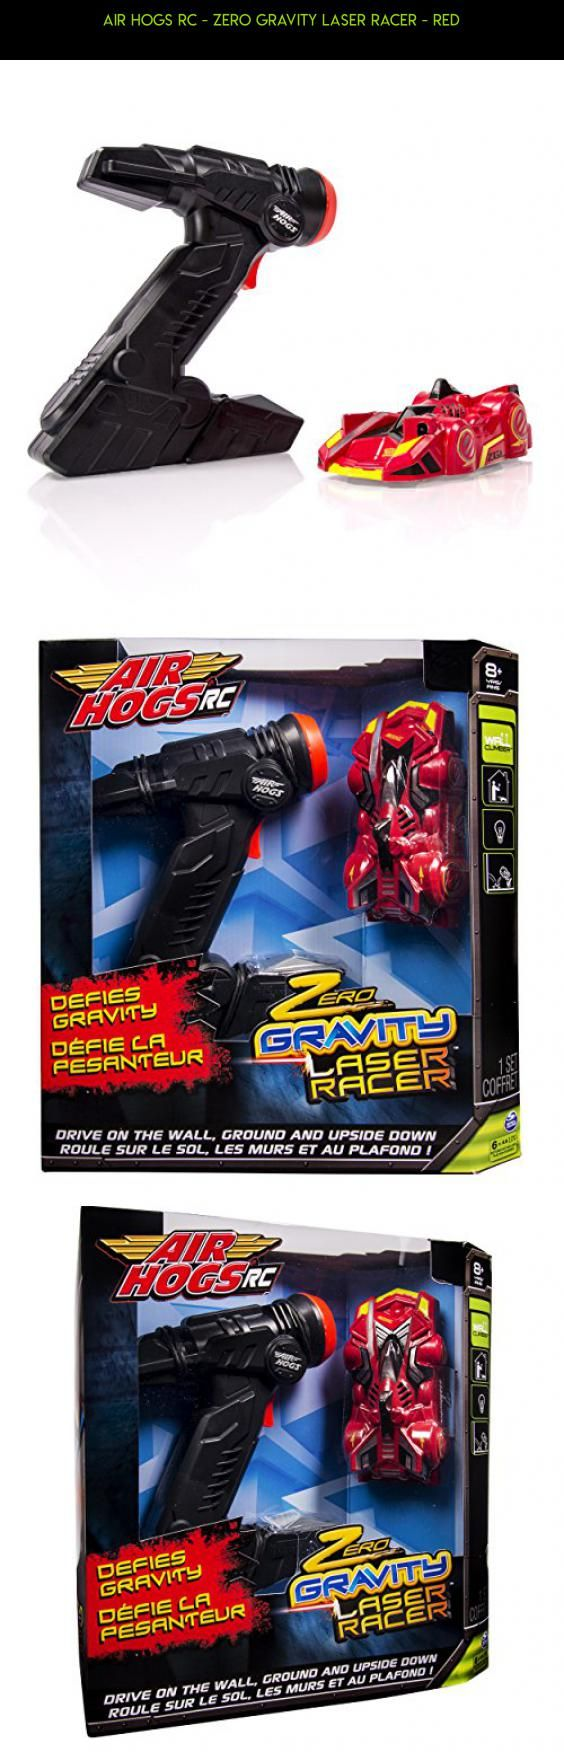 Air Hogs RC - Zero Gravity Laser Racer - Red #gadgets #hogs #technology #parts #tech #air #drone #kit #shopping #racing #products #fpv #plans #camera